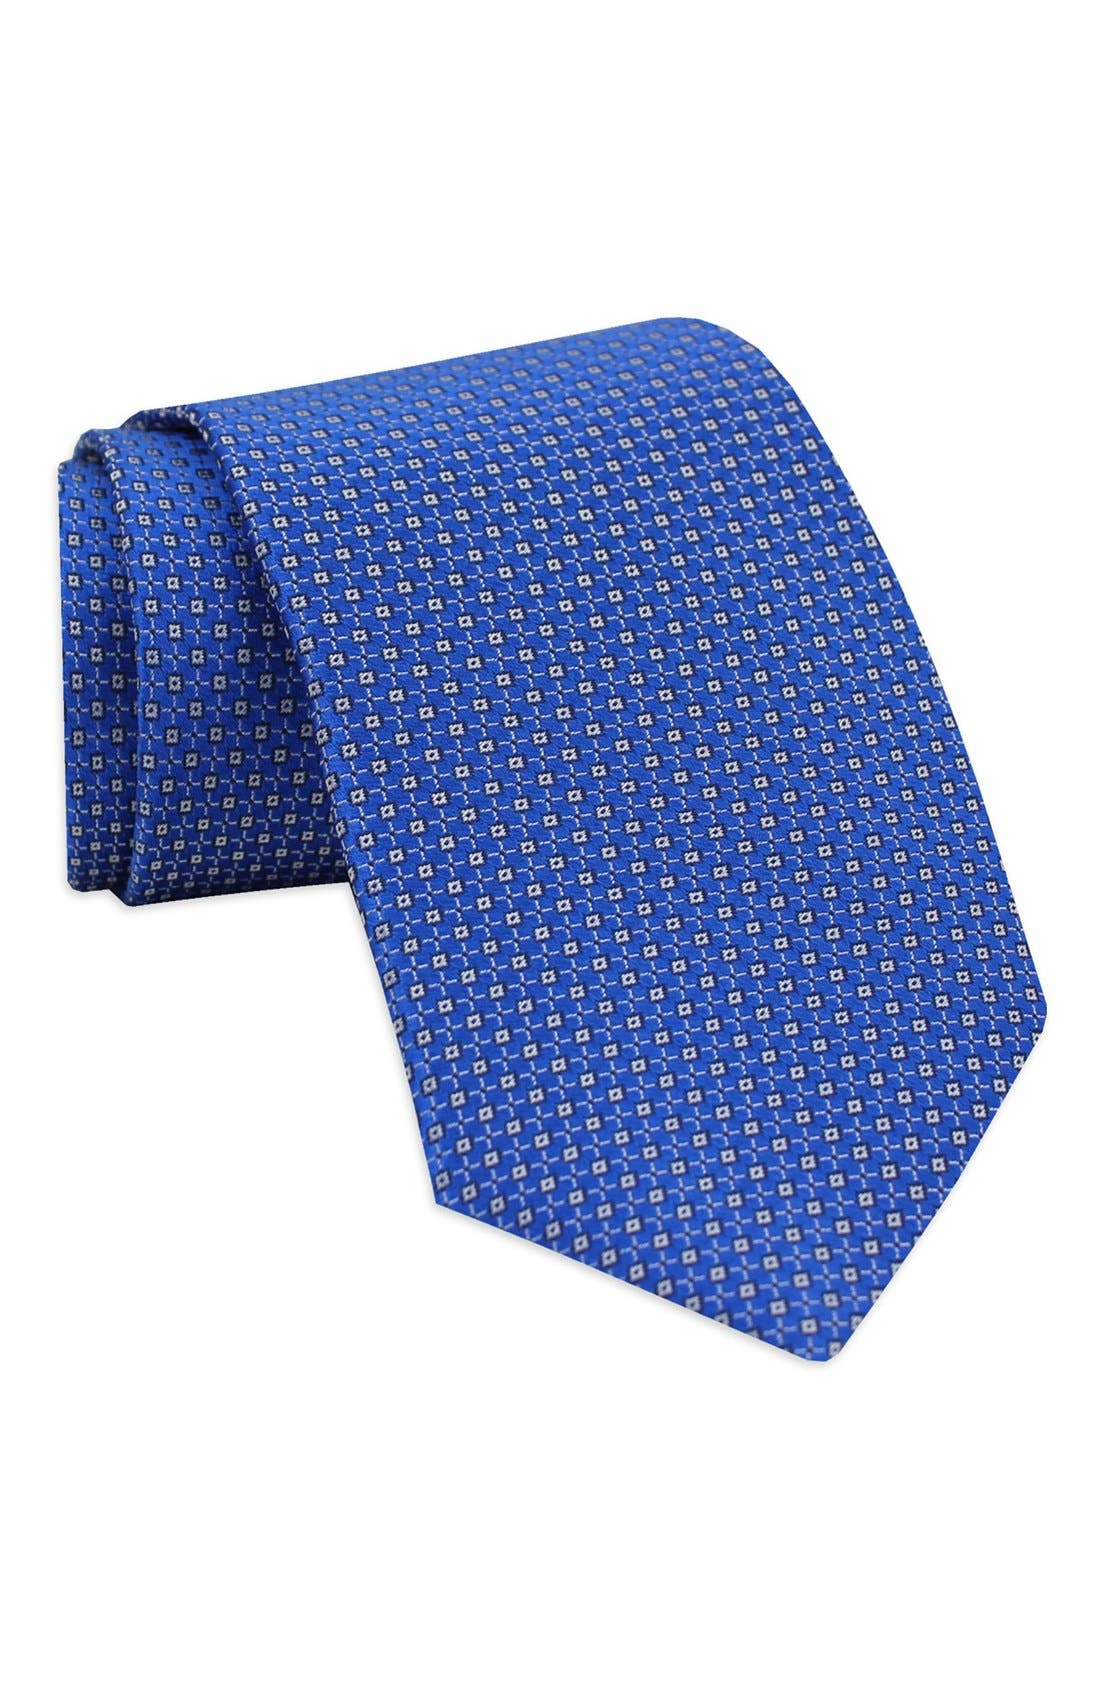 Geometric Woven Silk Tie,                             Main thumbnail 1, color,                             425